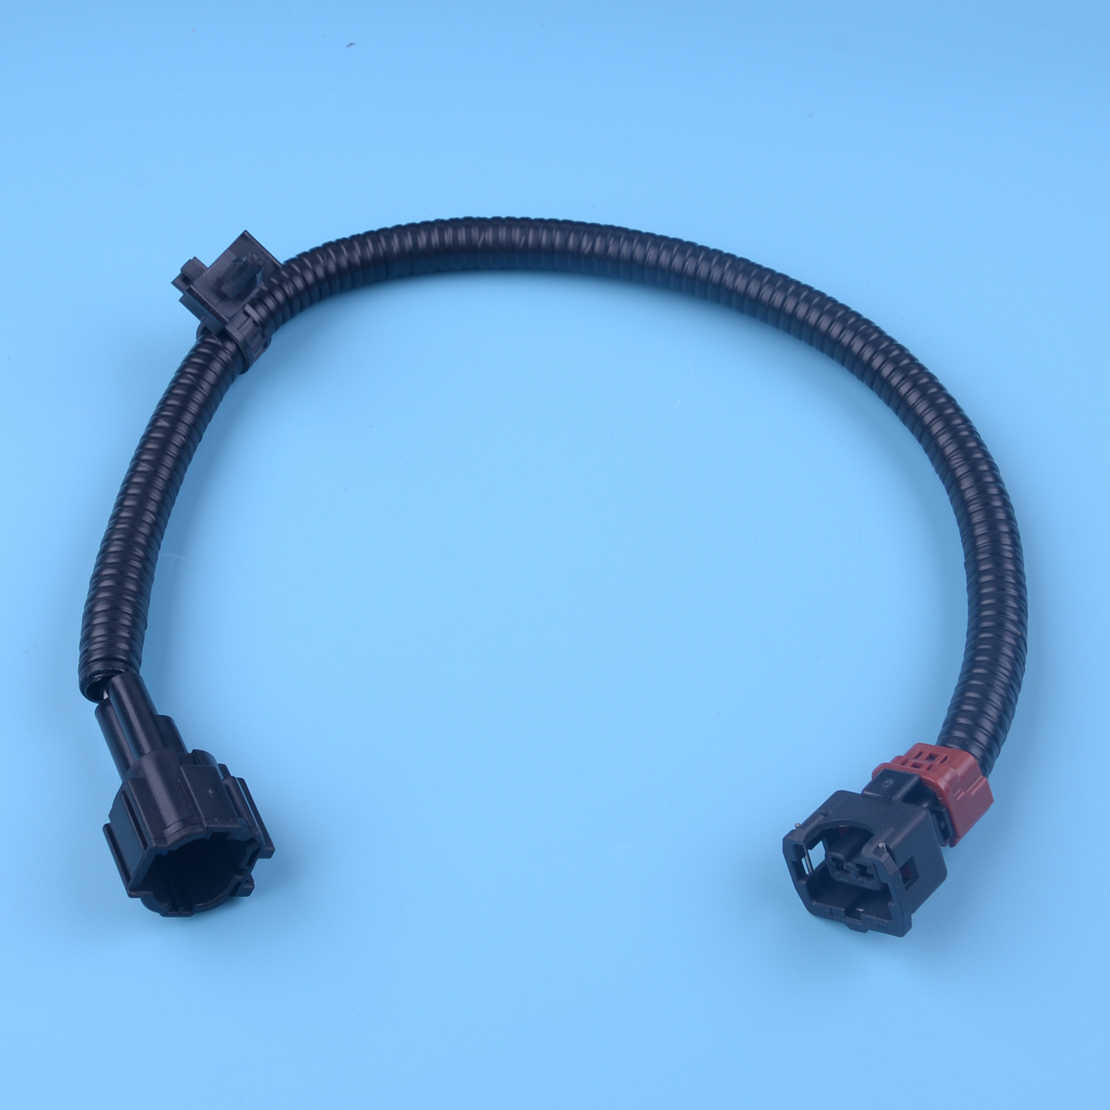 [QNCB_7524]  CITALL 24079 31U01 Car Engine Detonation Knock Sensor Wire Harness For  Infiniti G20 I30 Nissan Altima Frontier Pathfinder Quest| | - AliExpress | Infiniti I30 Wiring Pcm Harness |  | AliExpress